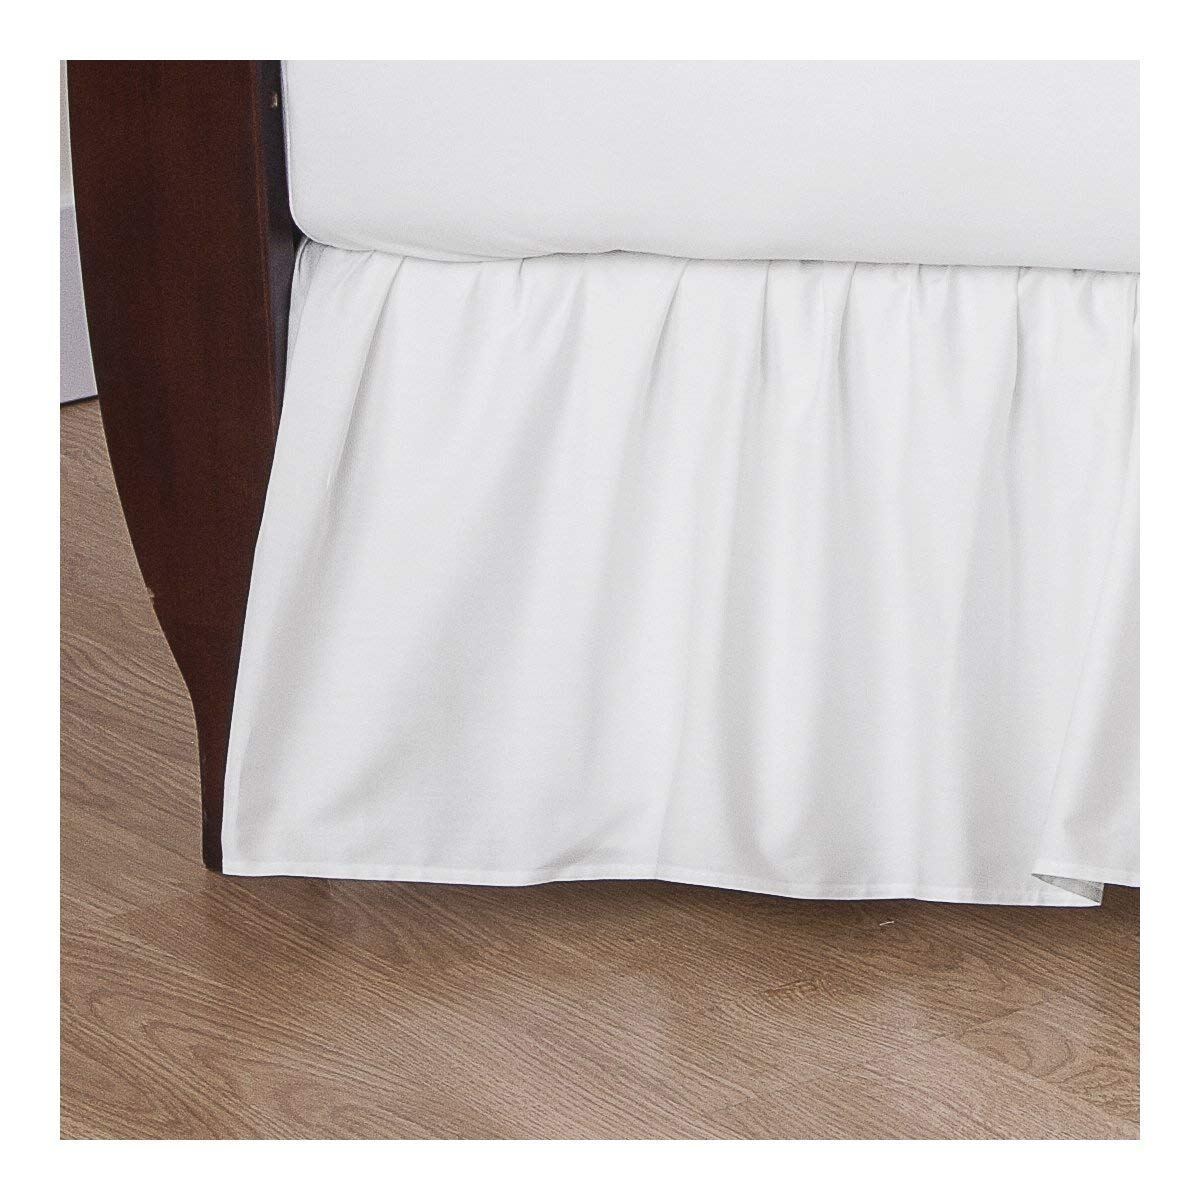 American Baby Company Percale Dust Ruffle - White